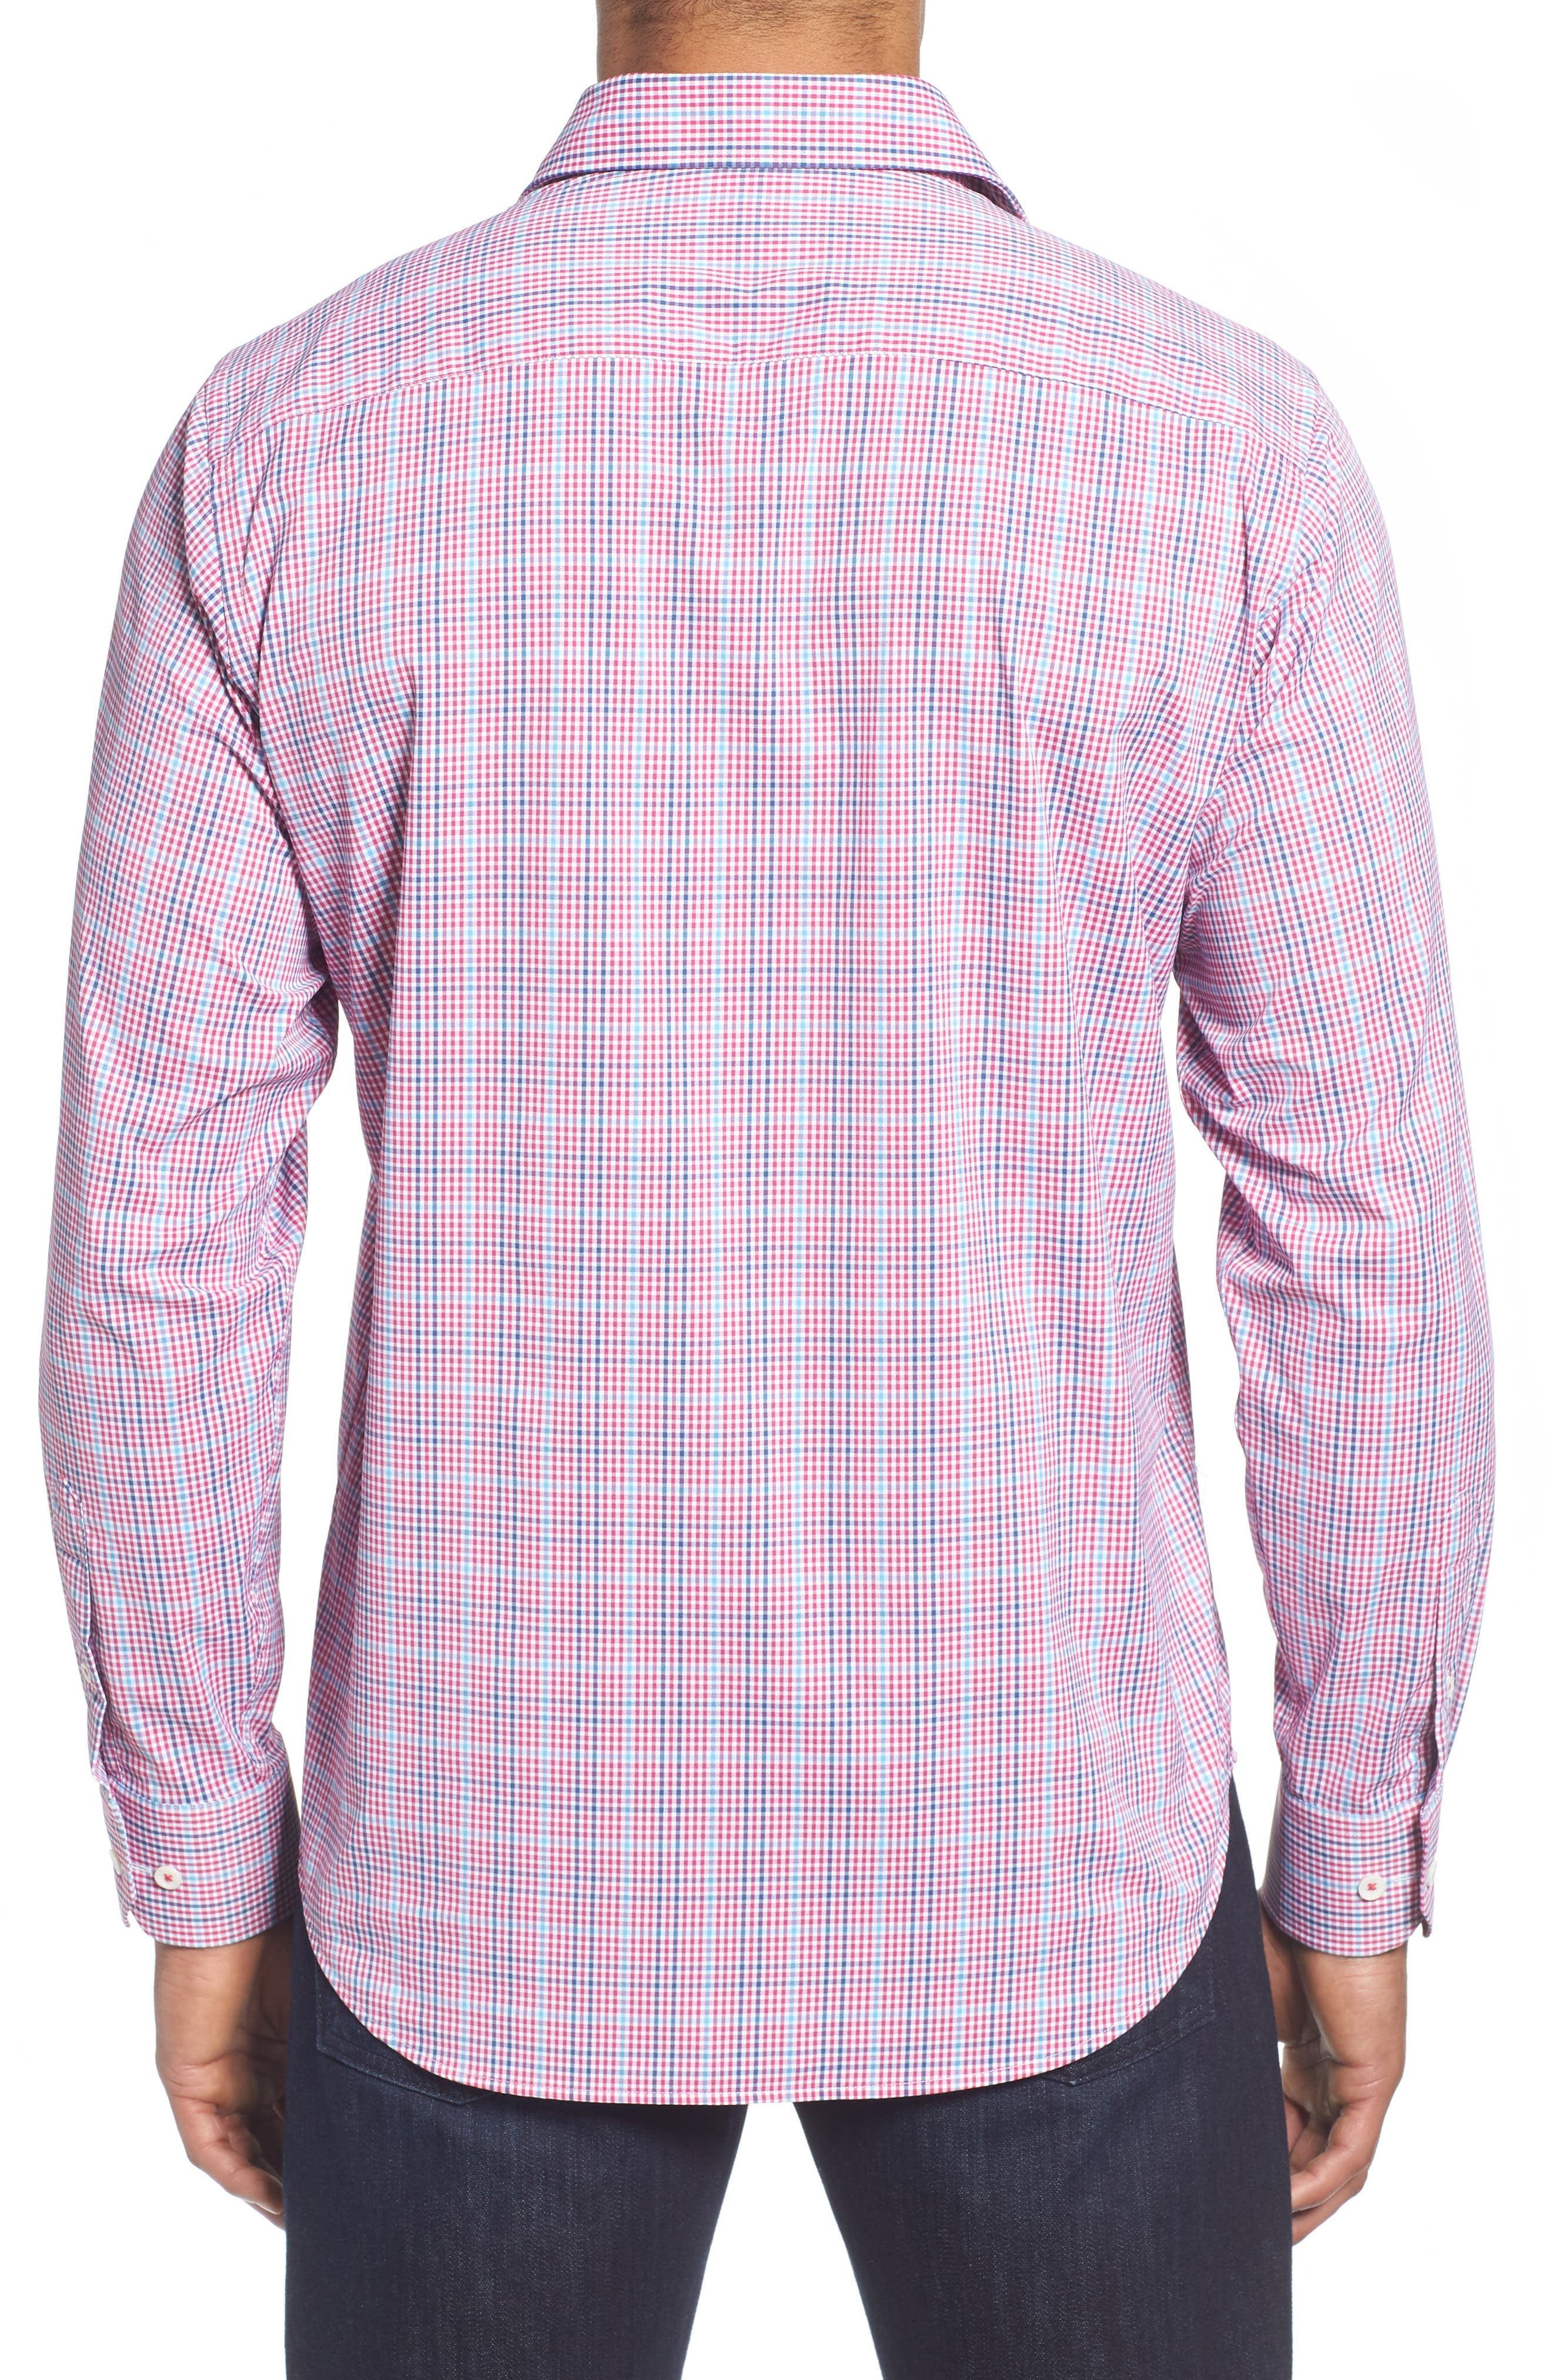 Classic Fit Pin Check Performance Sport Shirt,                             Alternate thumbnail 2, color,                             671